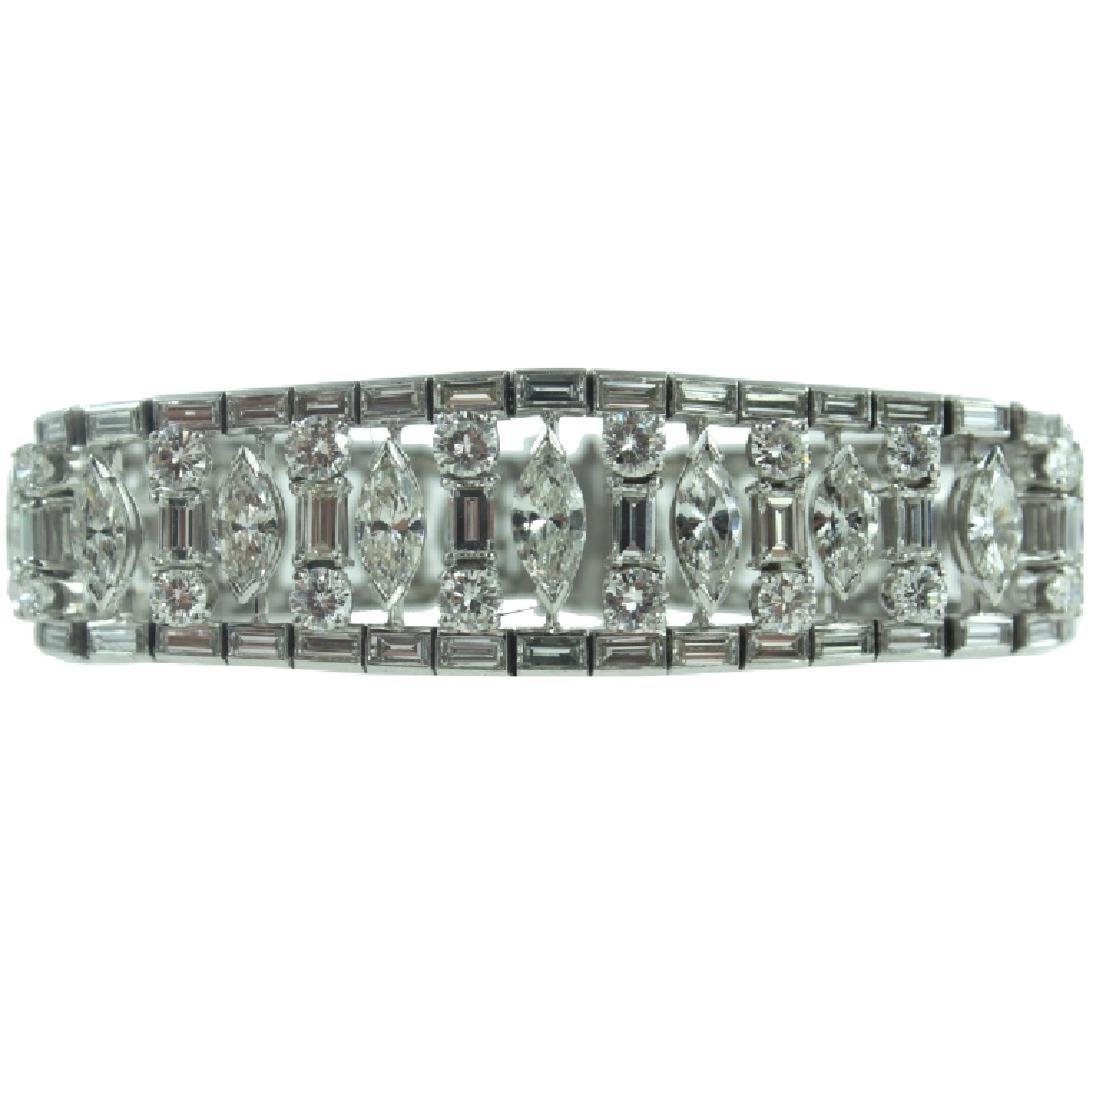 VERY FINE PLATINUM 25.00 CARAT DIAMOND BRACELET